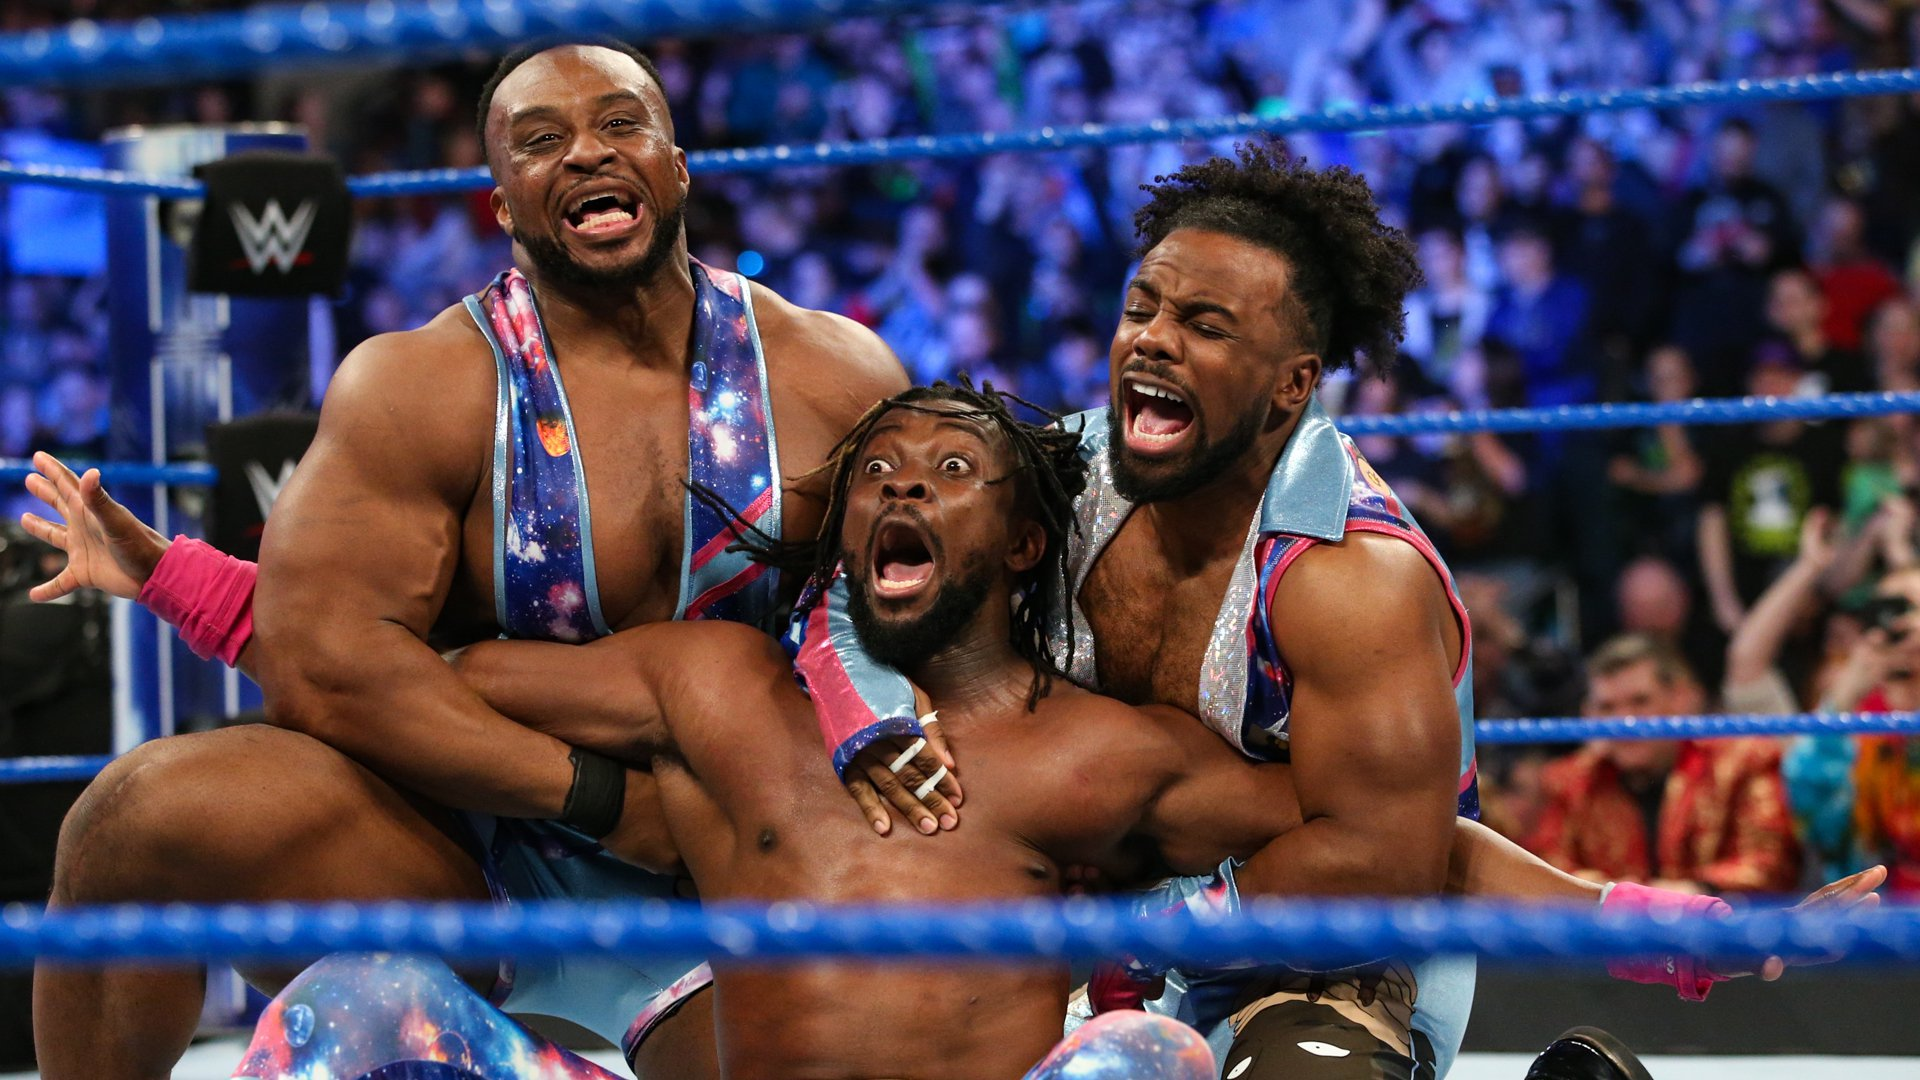 Big E and Xavier Woods hit the ring to start the celebration!